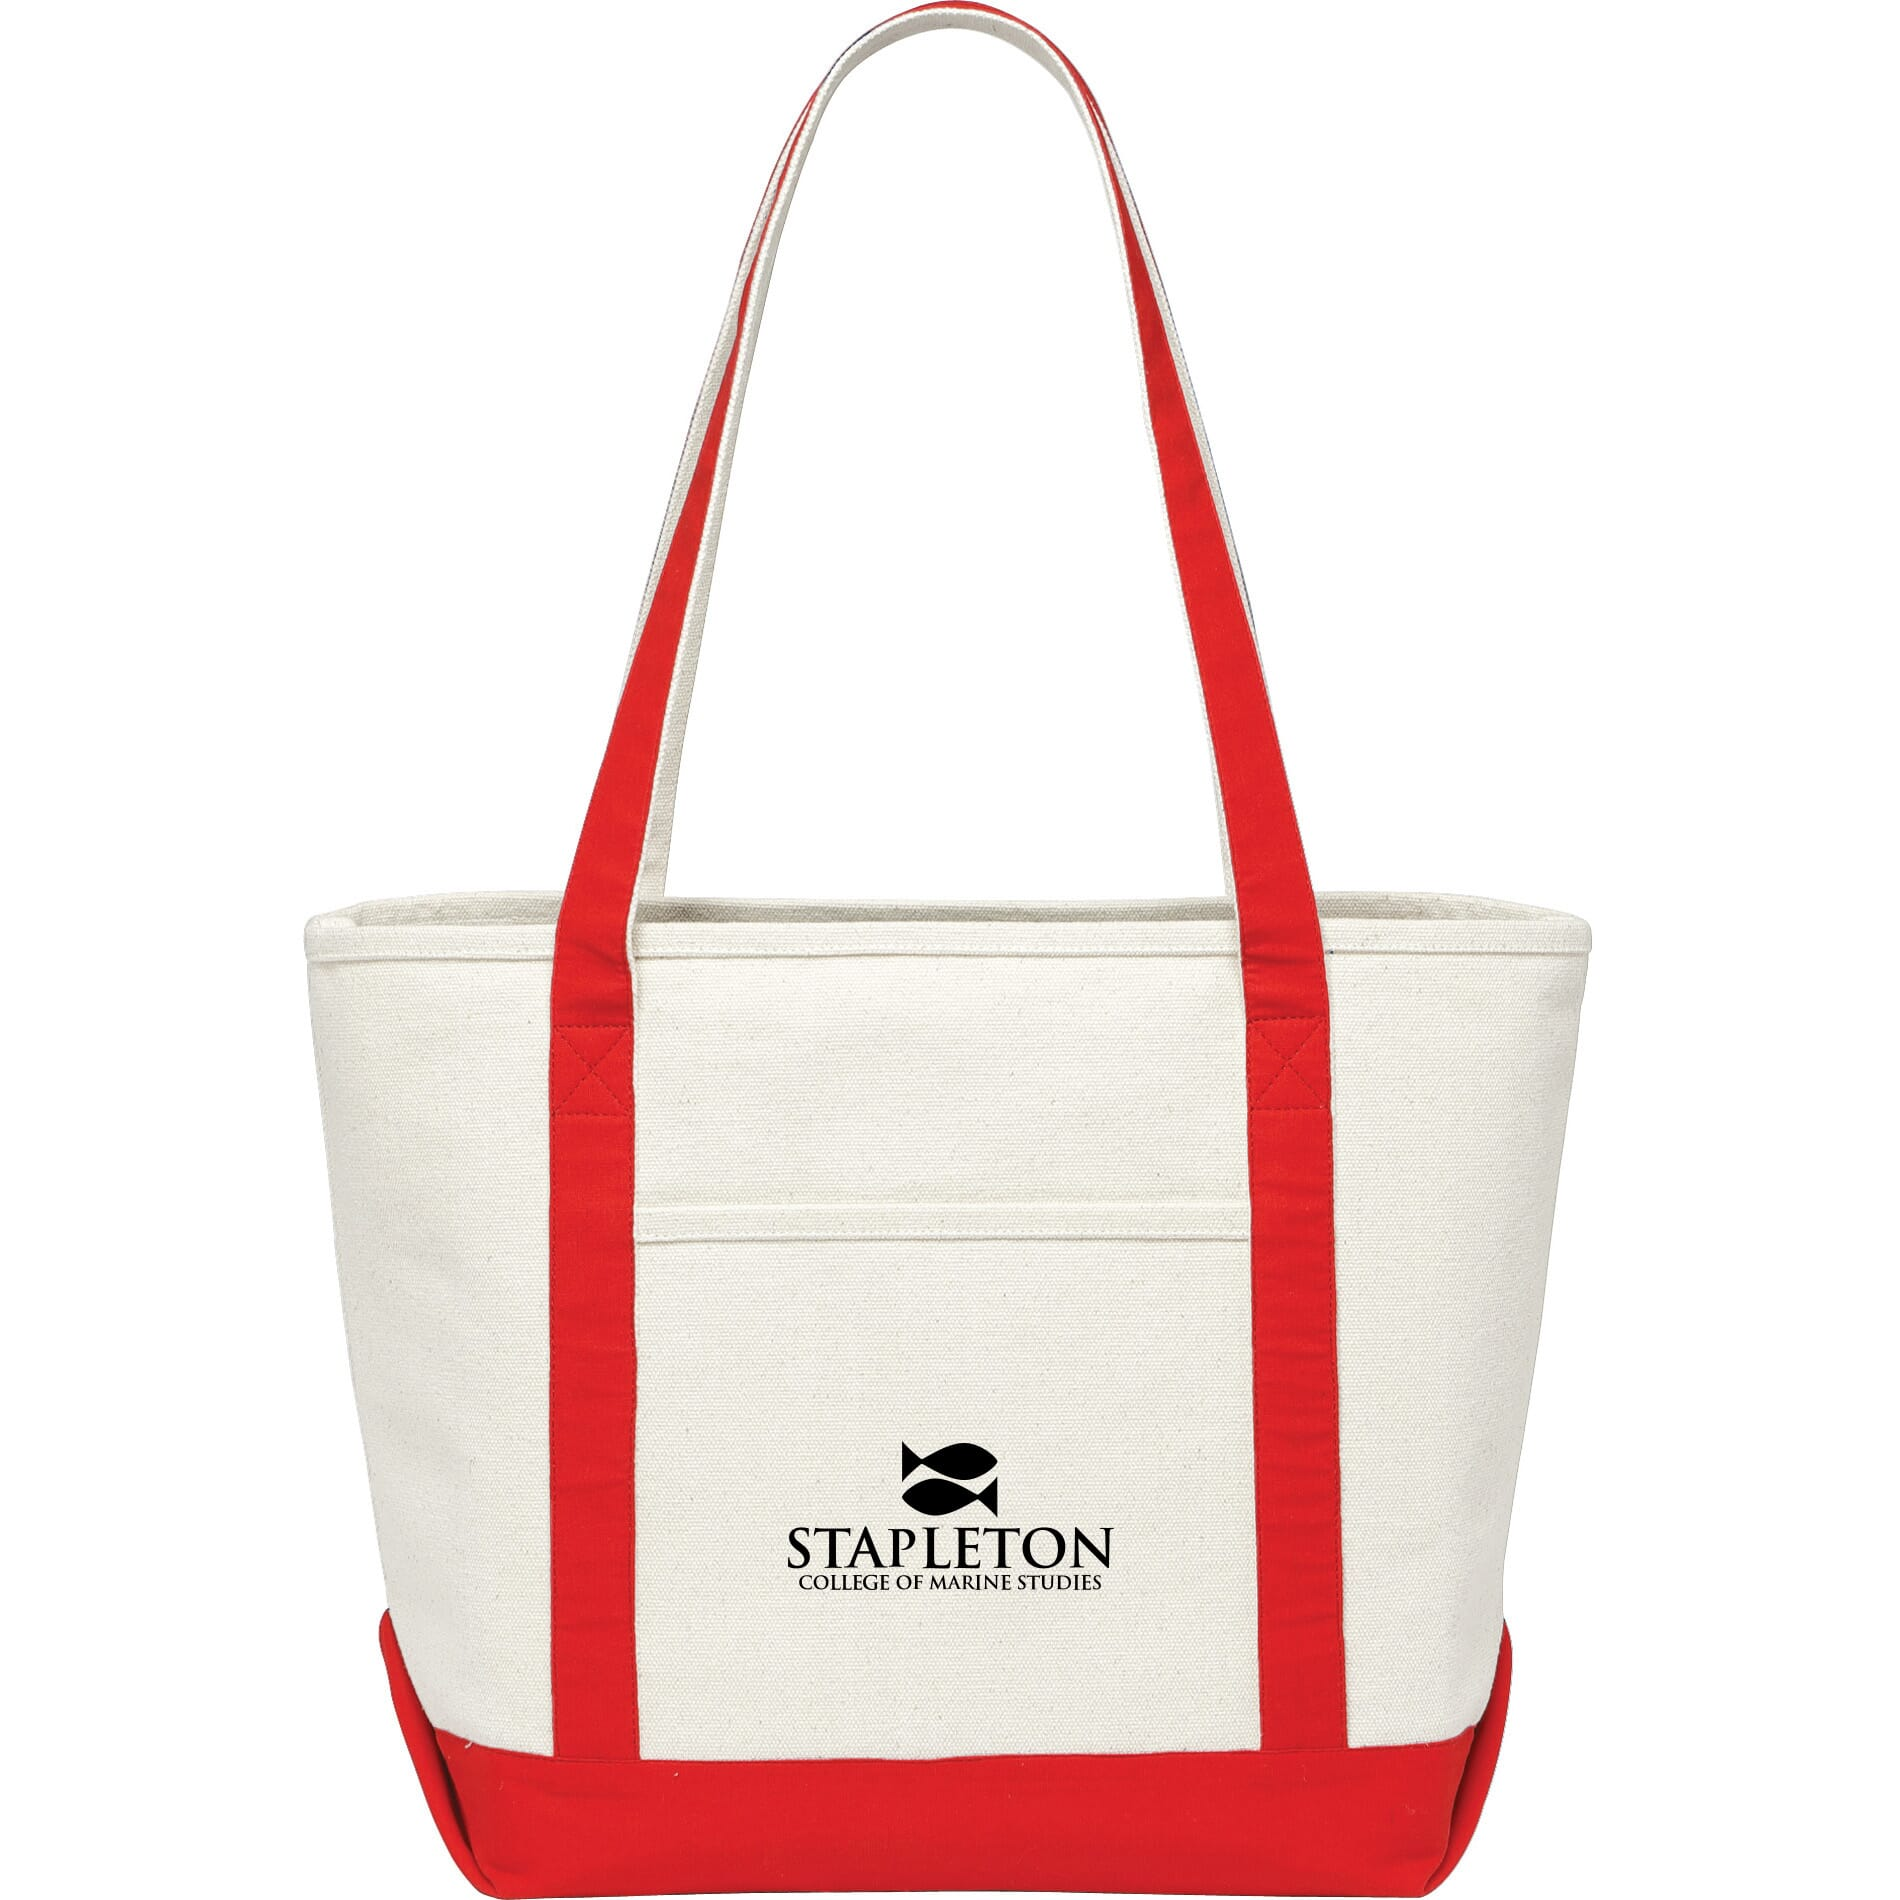 Canvas tote with red accents